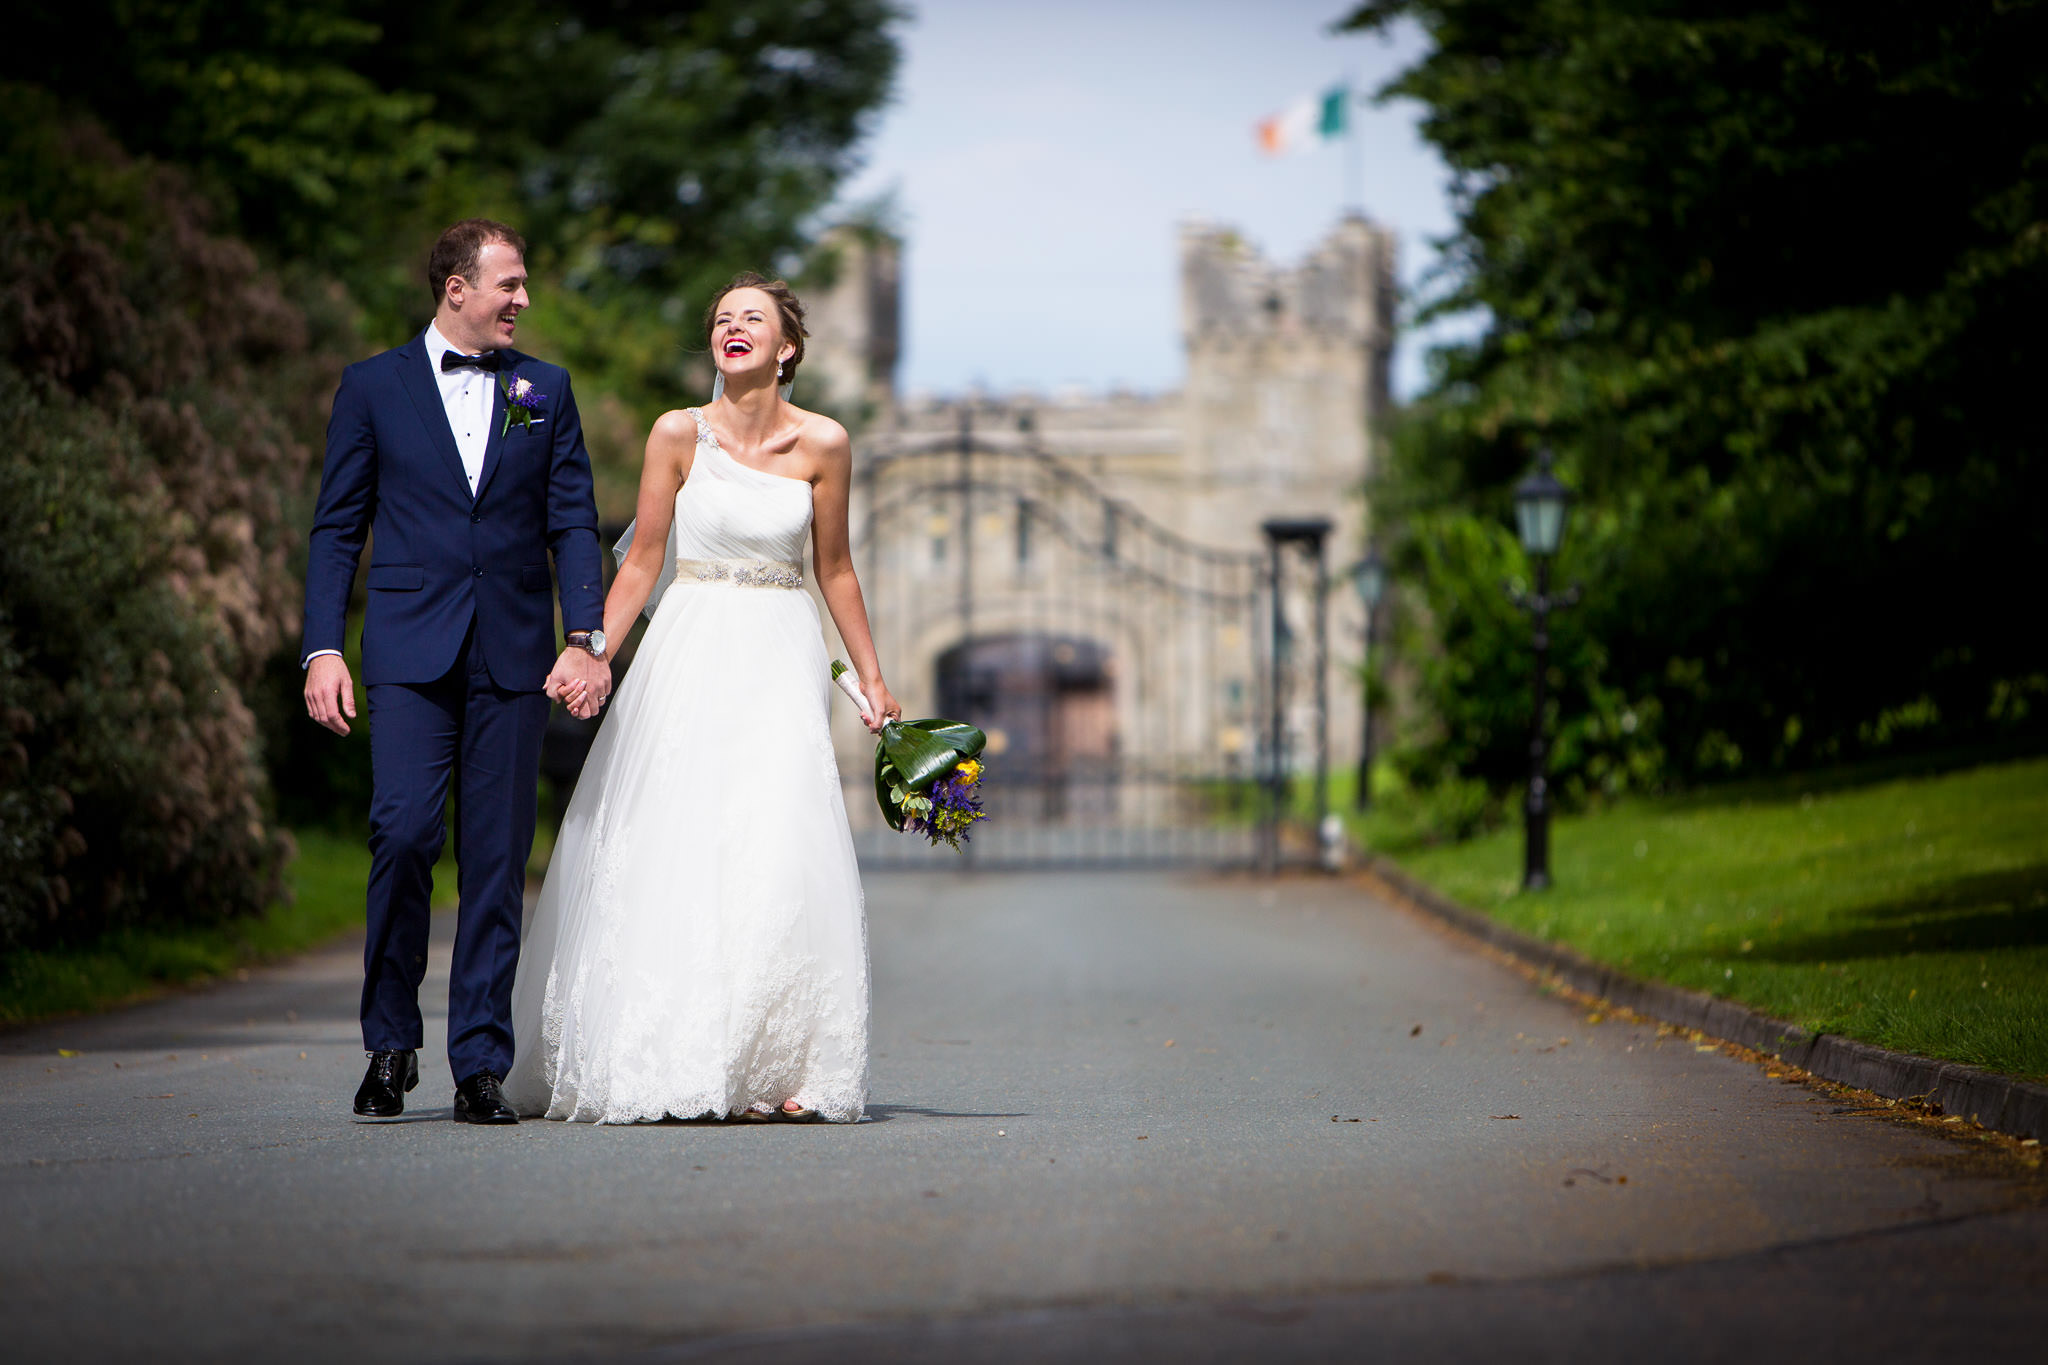 bride and groom walking down a road laughing wiht a castle in the background